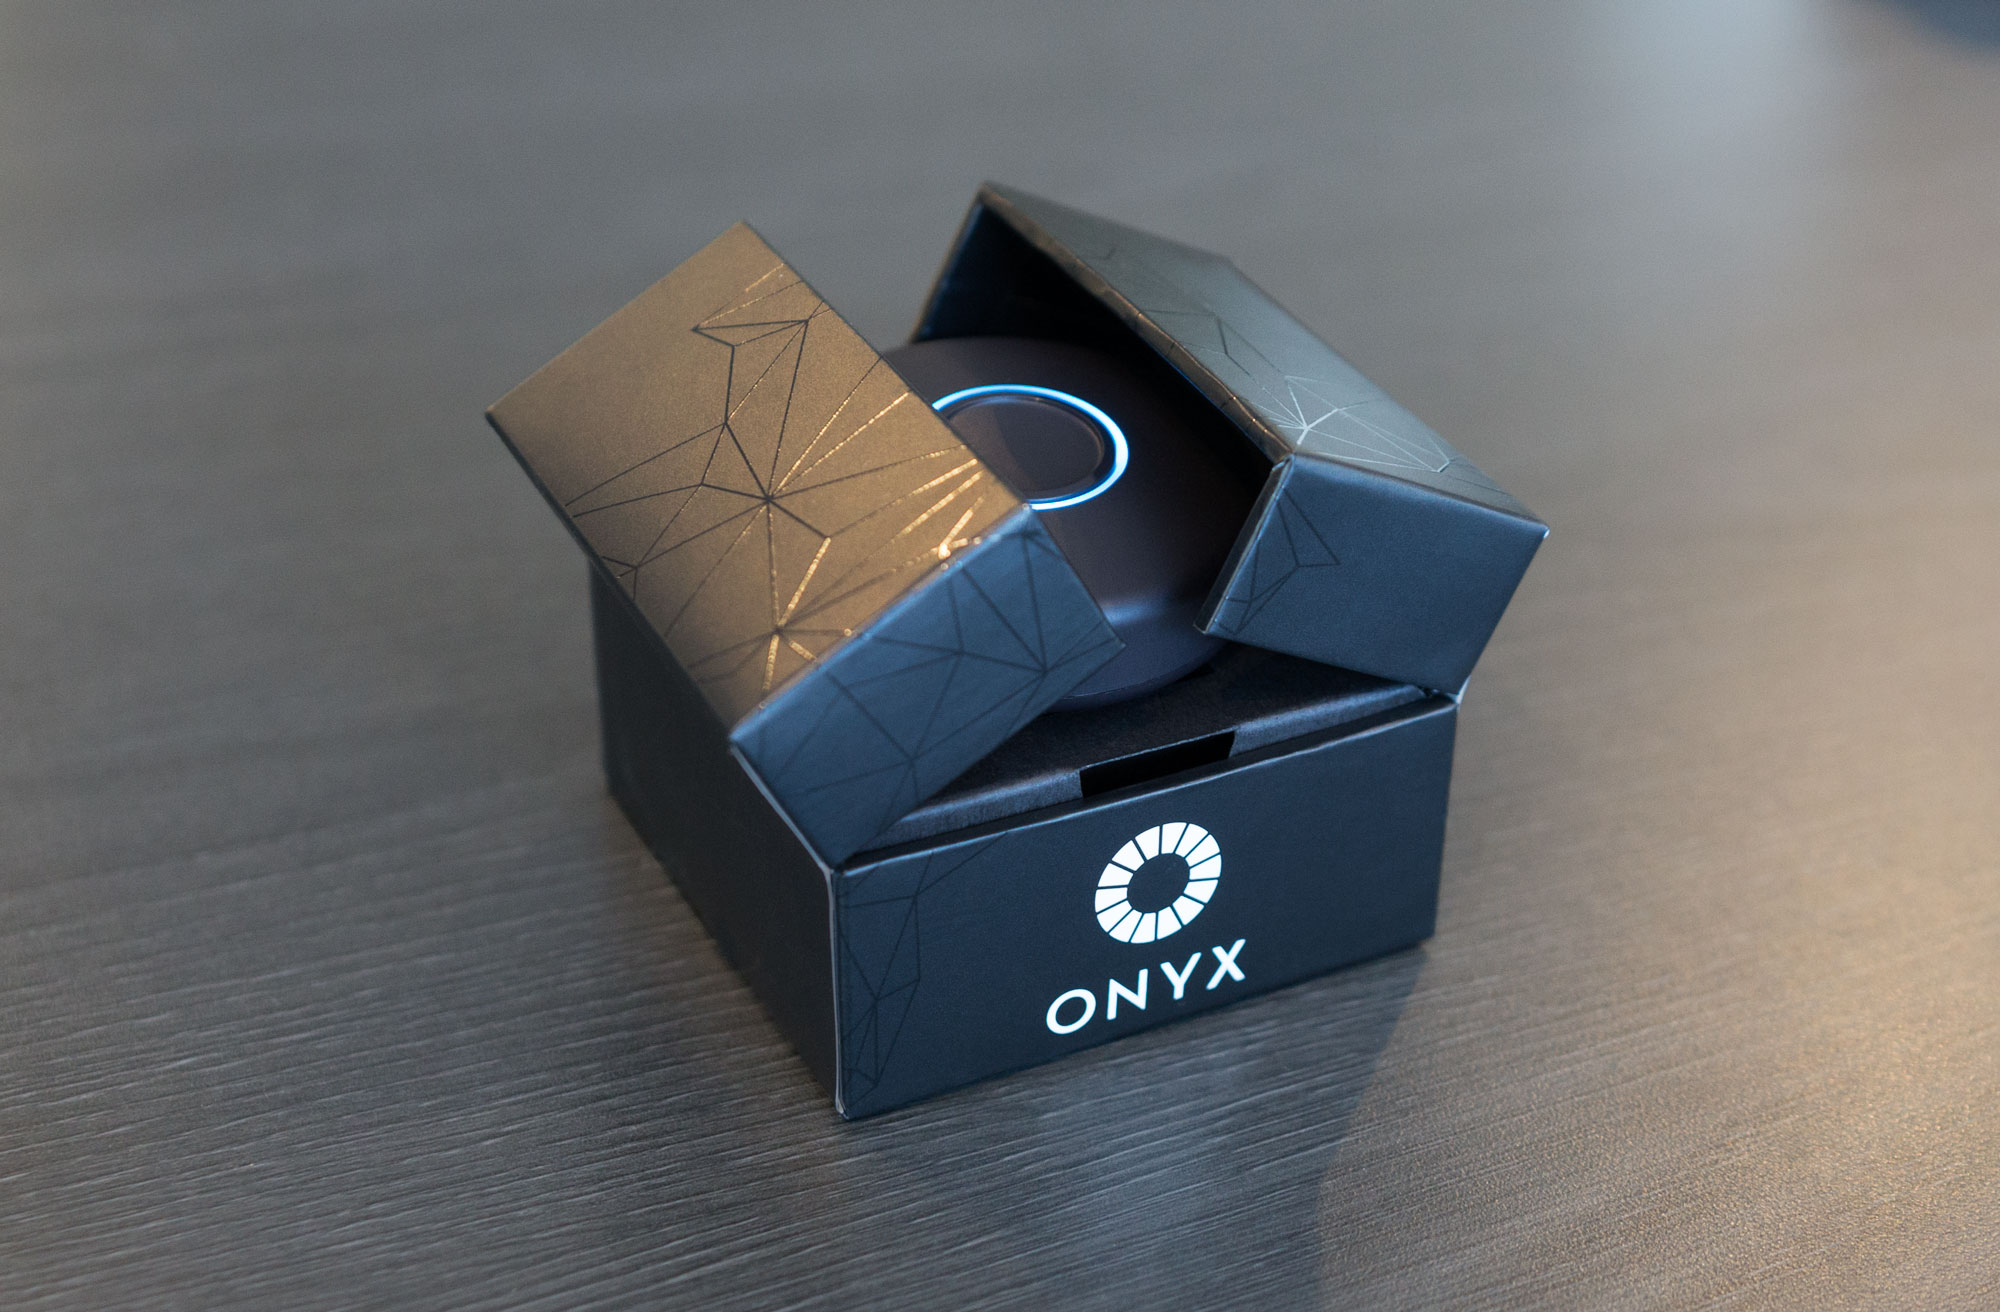 onyx packaging